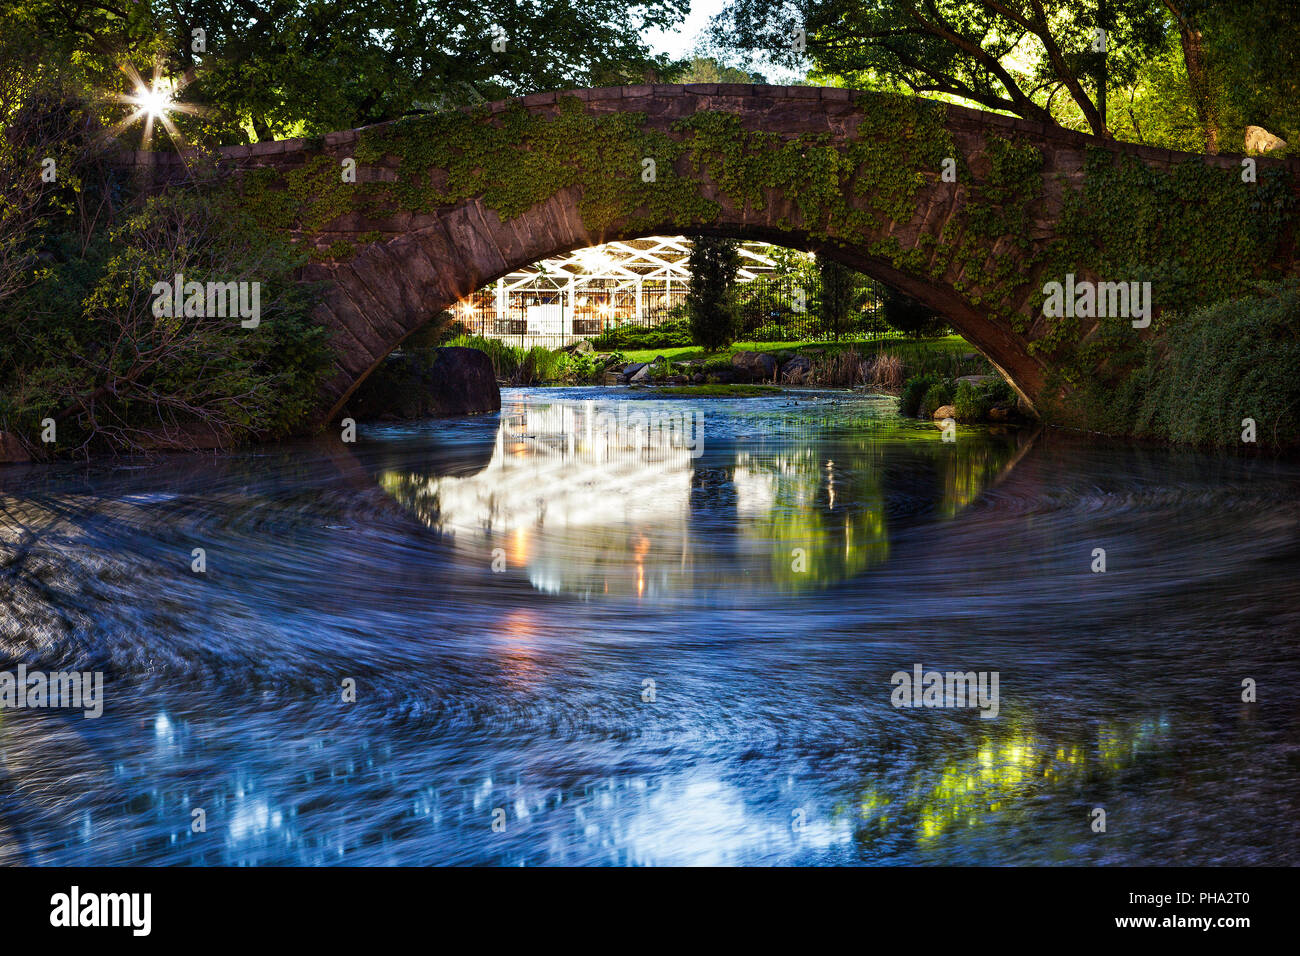 The pond beneath Gapstow Bridge in New York's Central Park reflects the evening light. - Stock Image